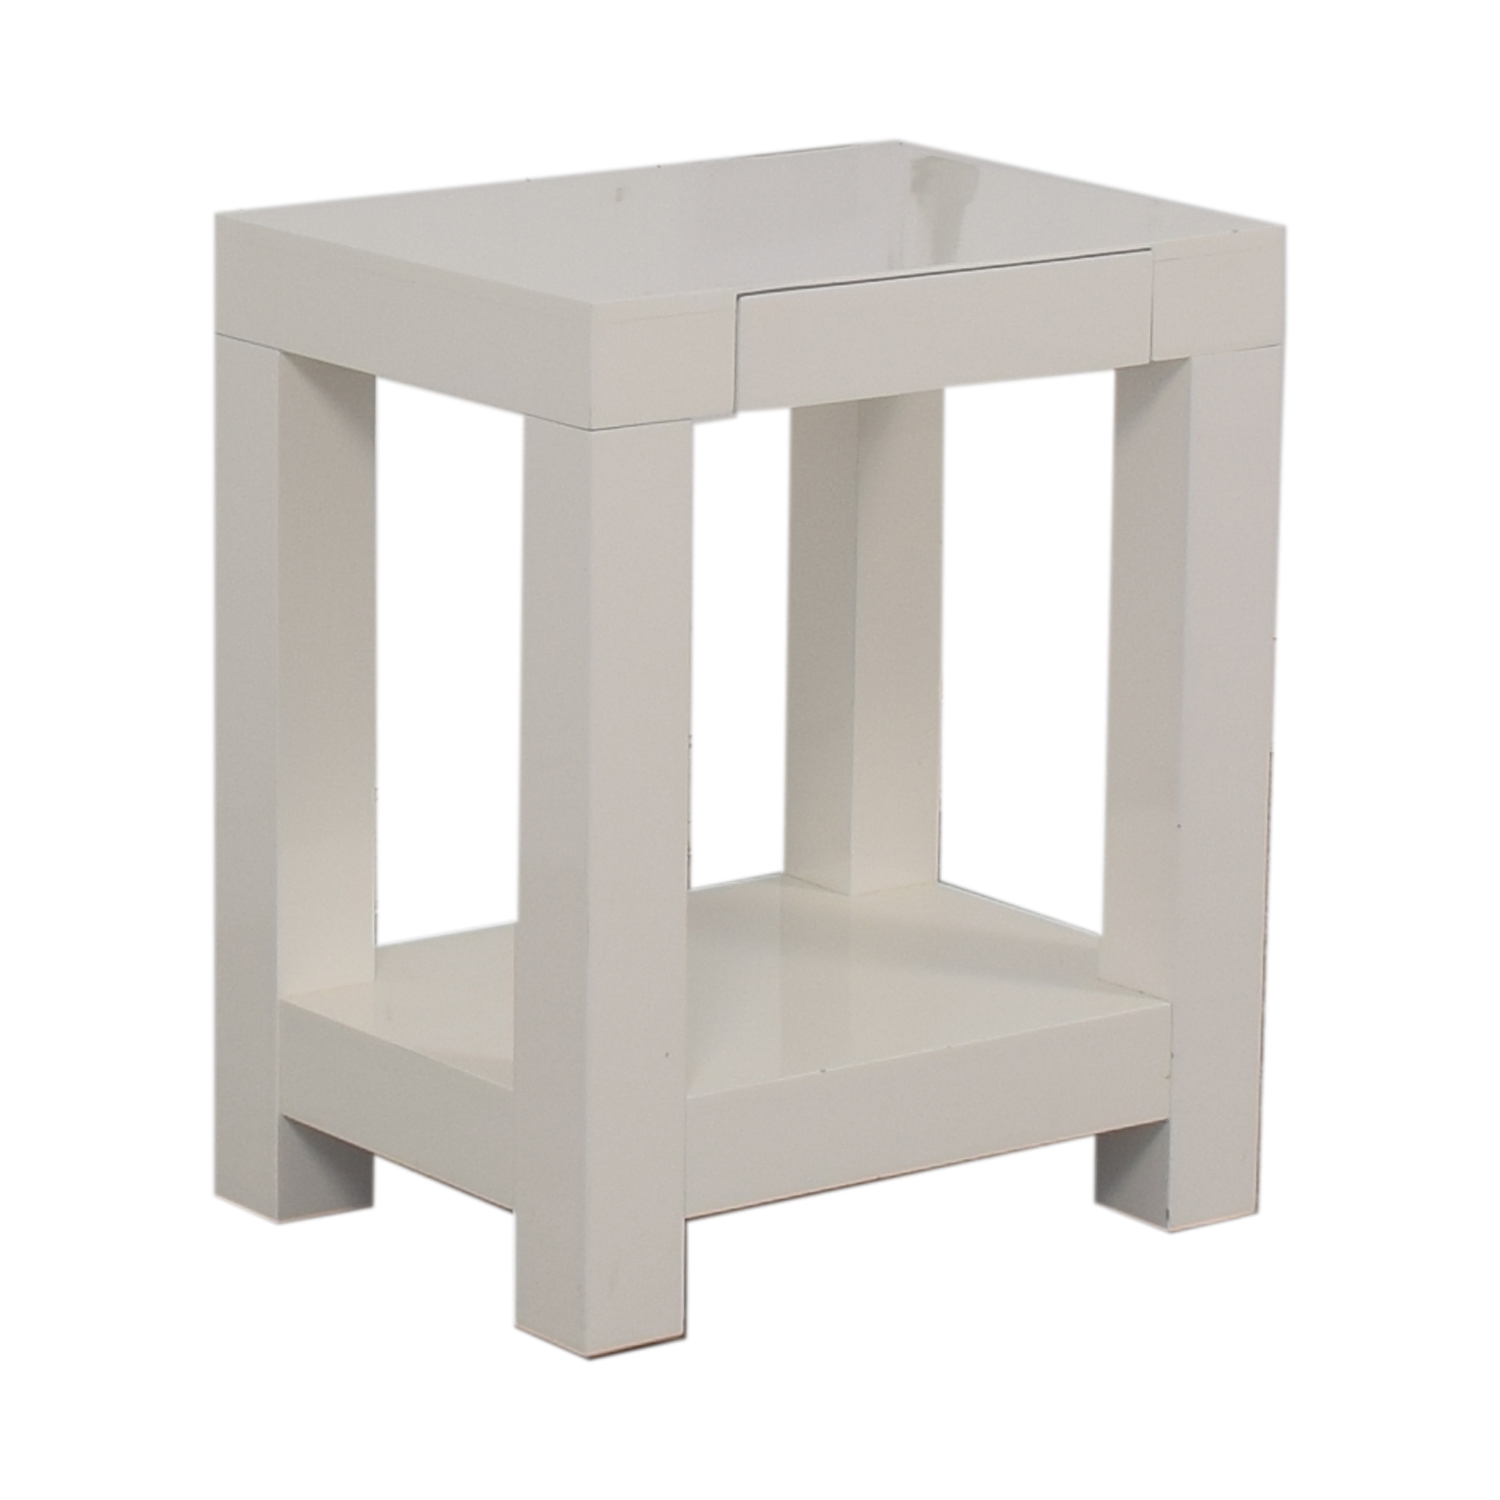 off west elm parsons end table tables second hand navy blue chalk paint pet crate laura ashley kitchen chairs grey walls brown leather couch acme espresso making pipe furniture